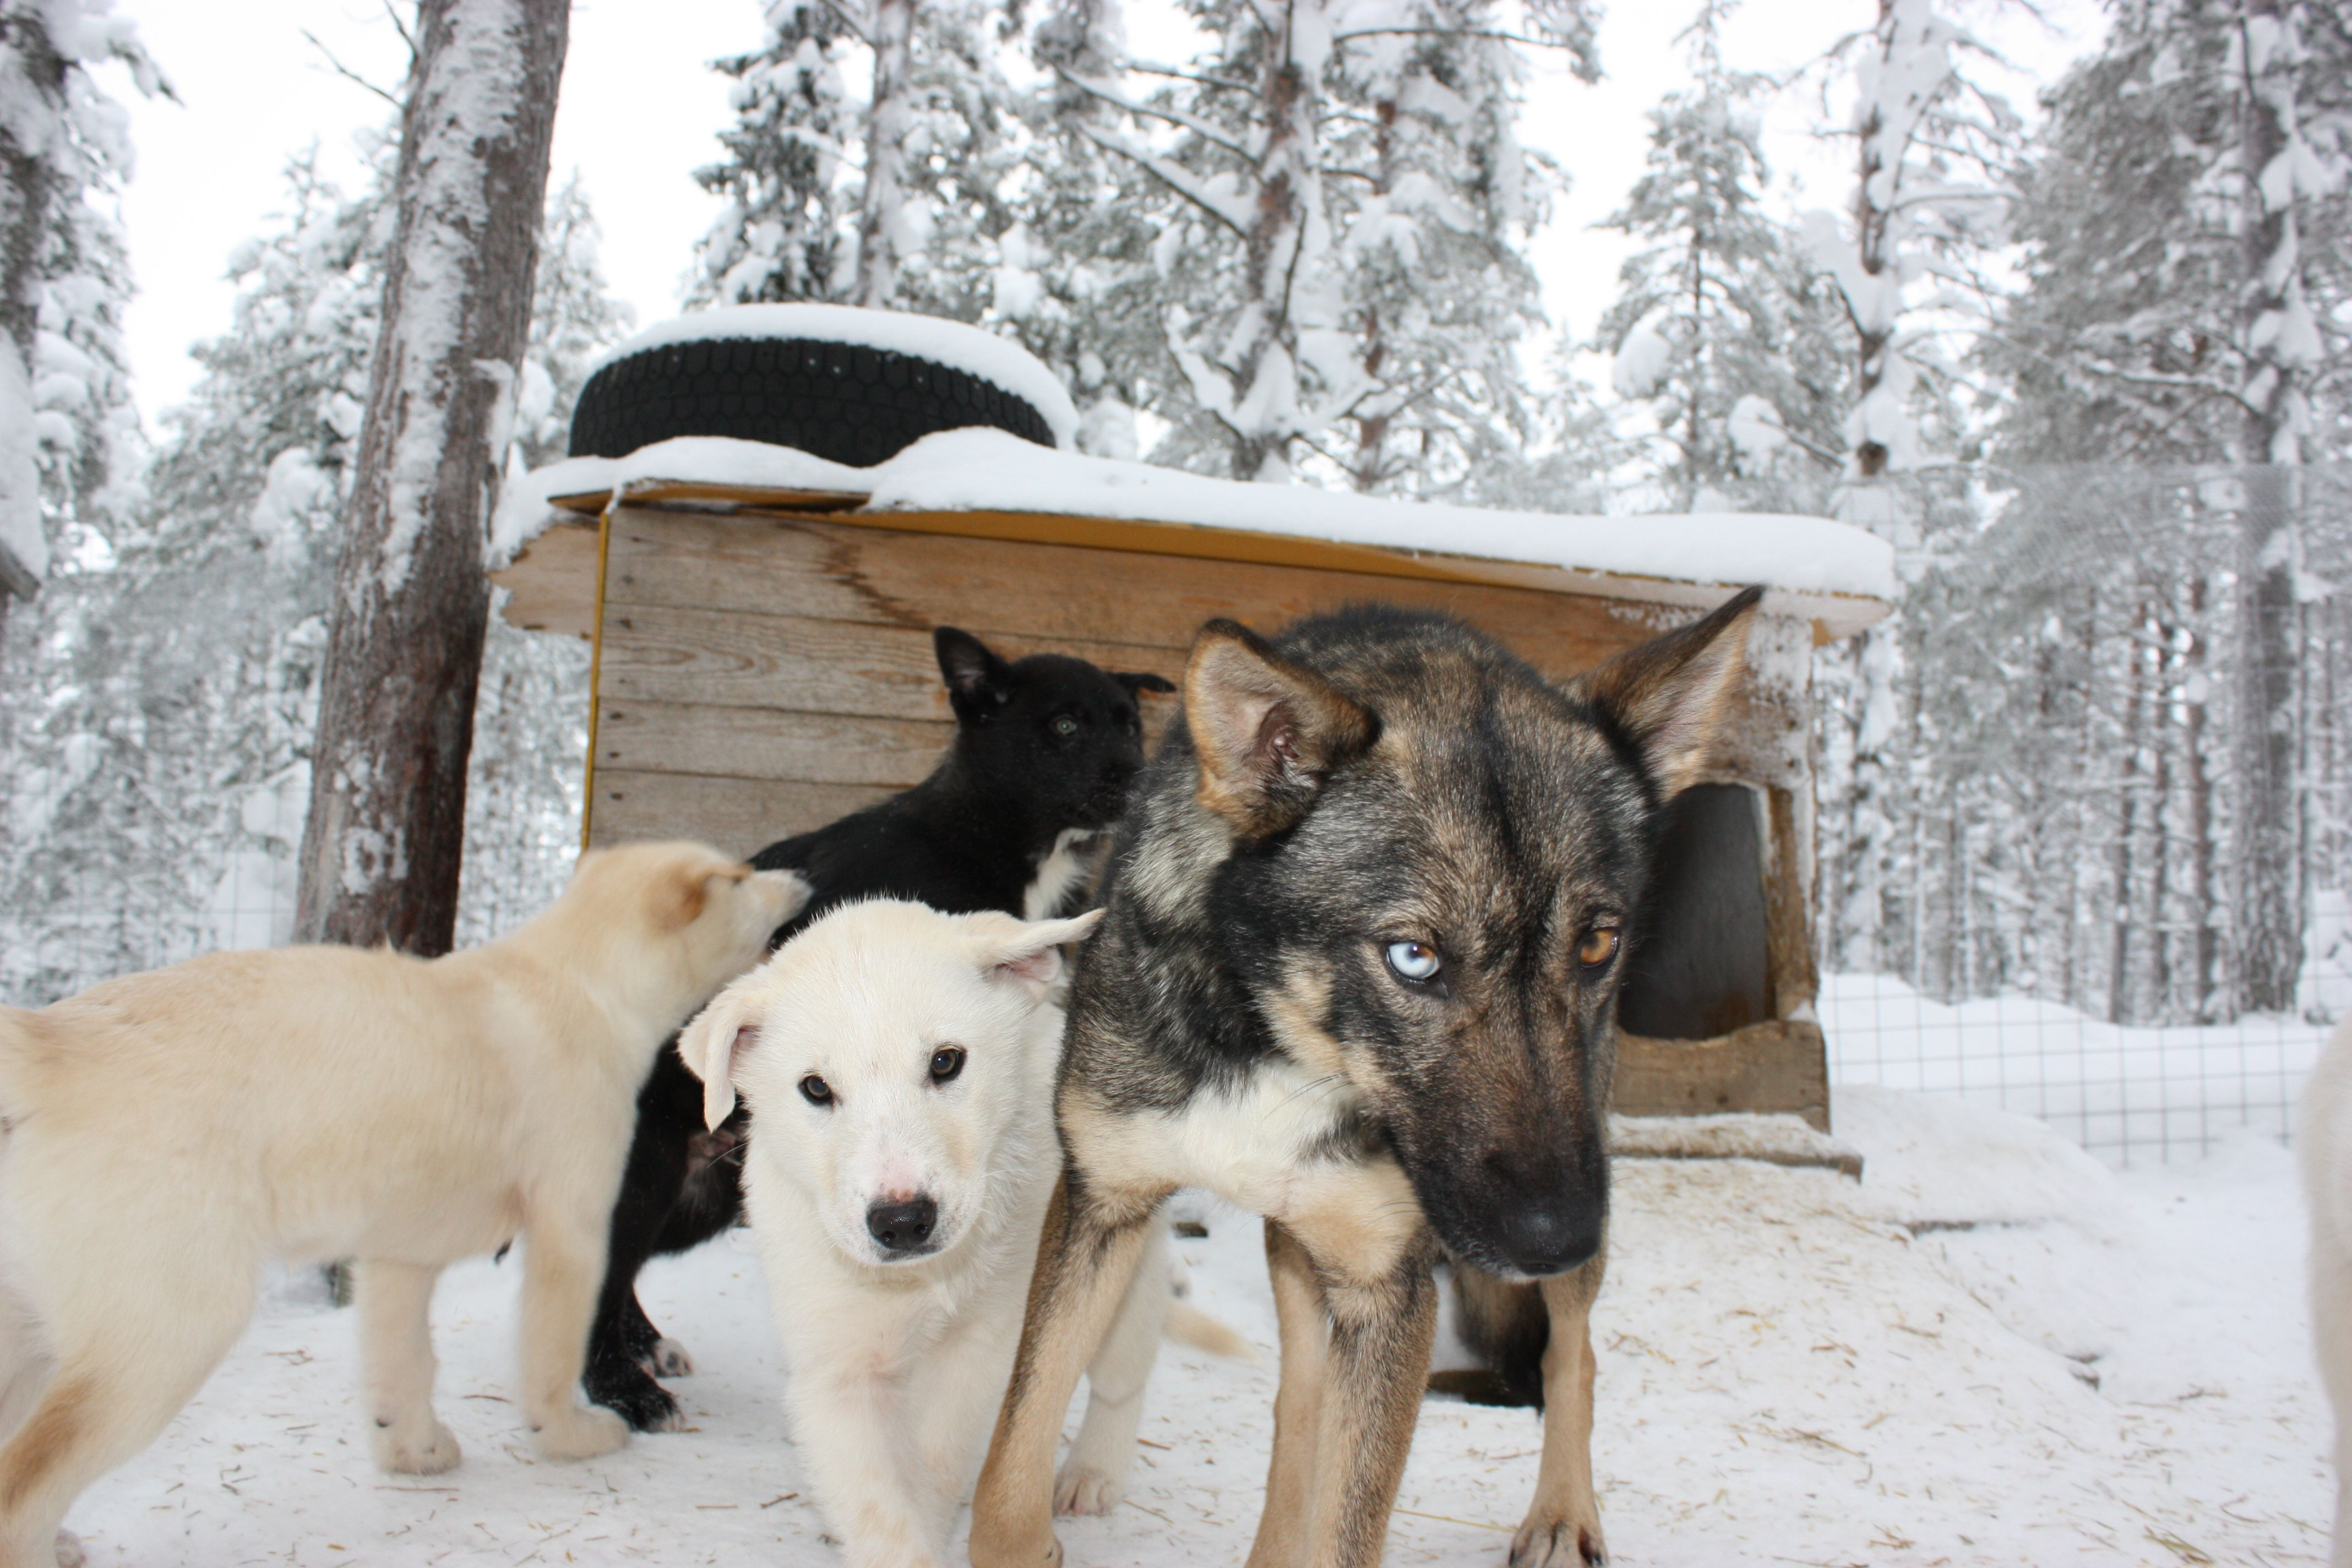 Dogsledding in Finland. Inca and pups at the main cabin.